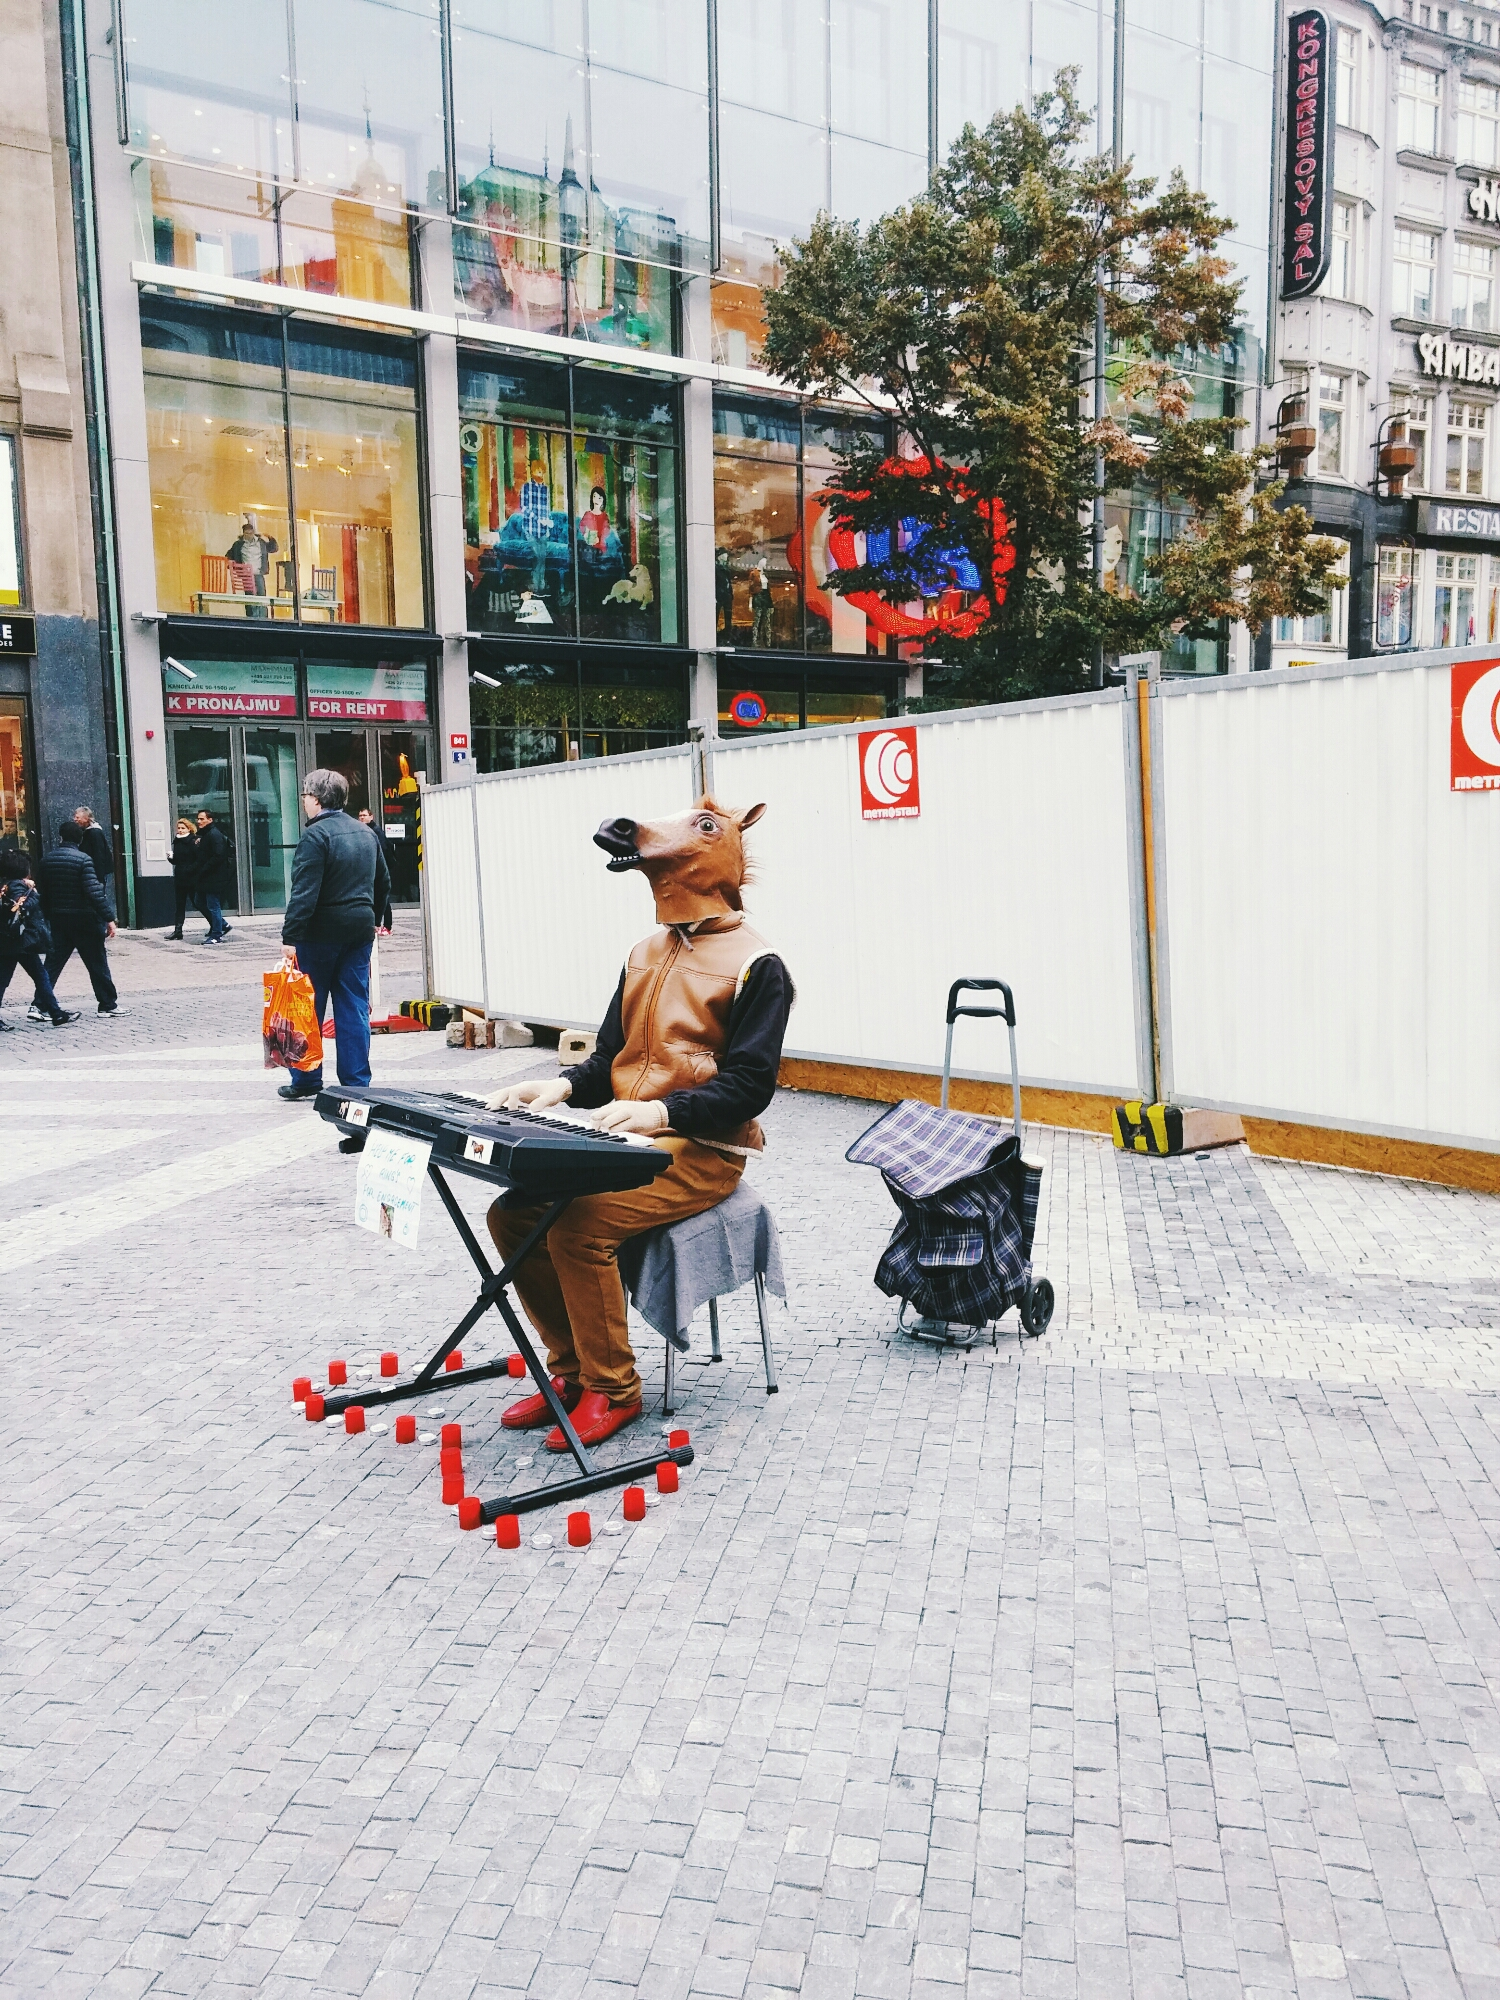 {This fellow was playing tunes and neighing while shaking his horse head. It was hilarious & gathered quite a group.}